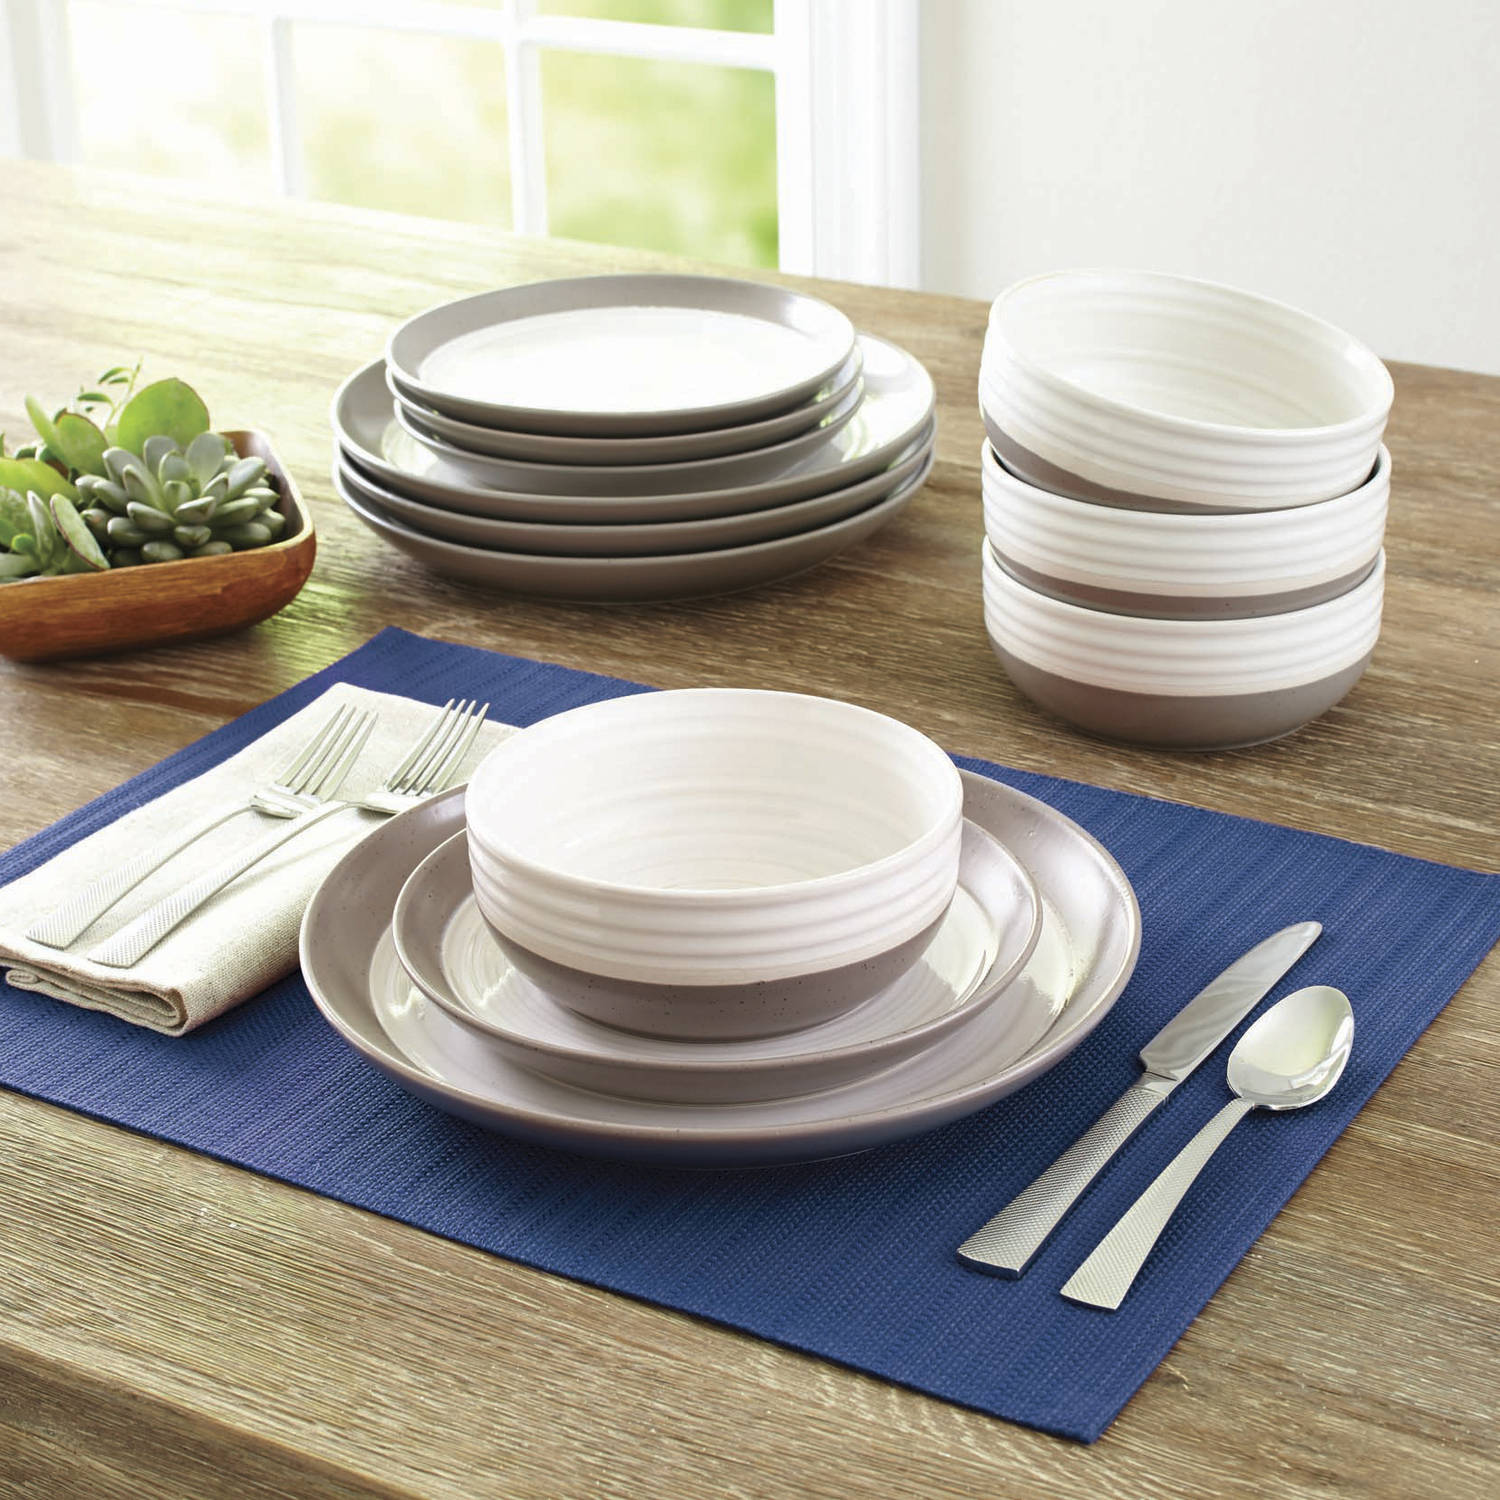 Charmant Better Homes And Garden Ashmoor 12 Piece Dinnerware Set   Walmart.com